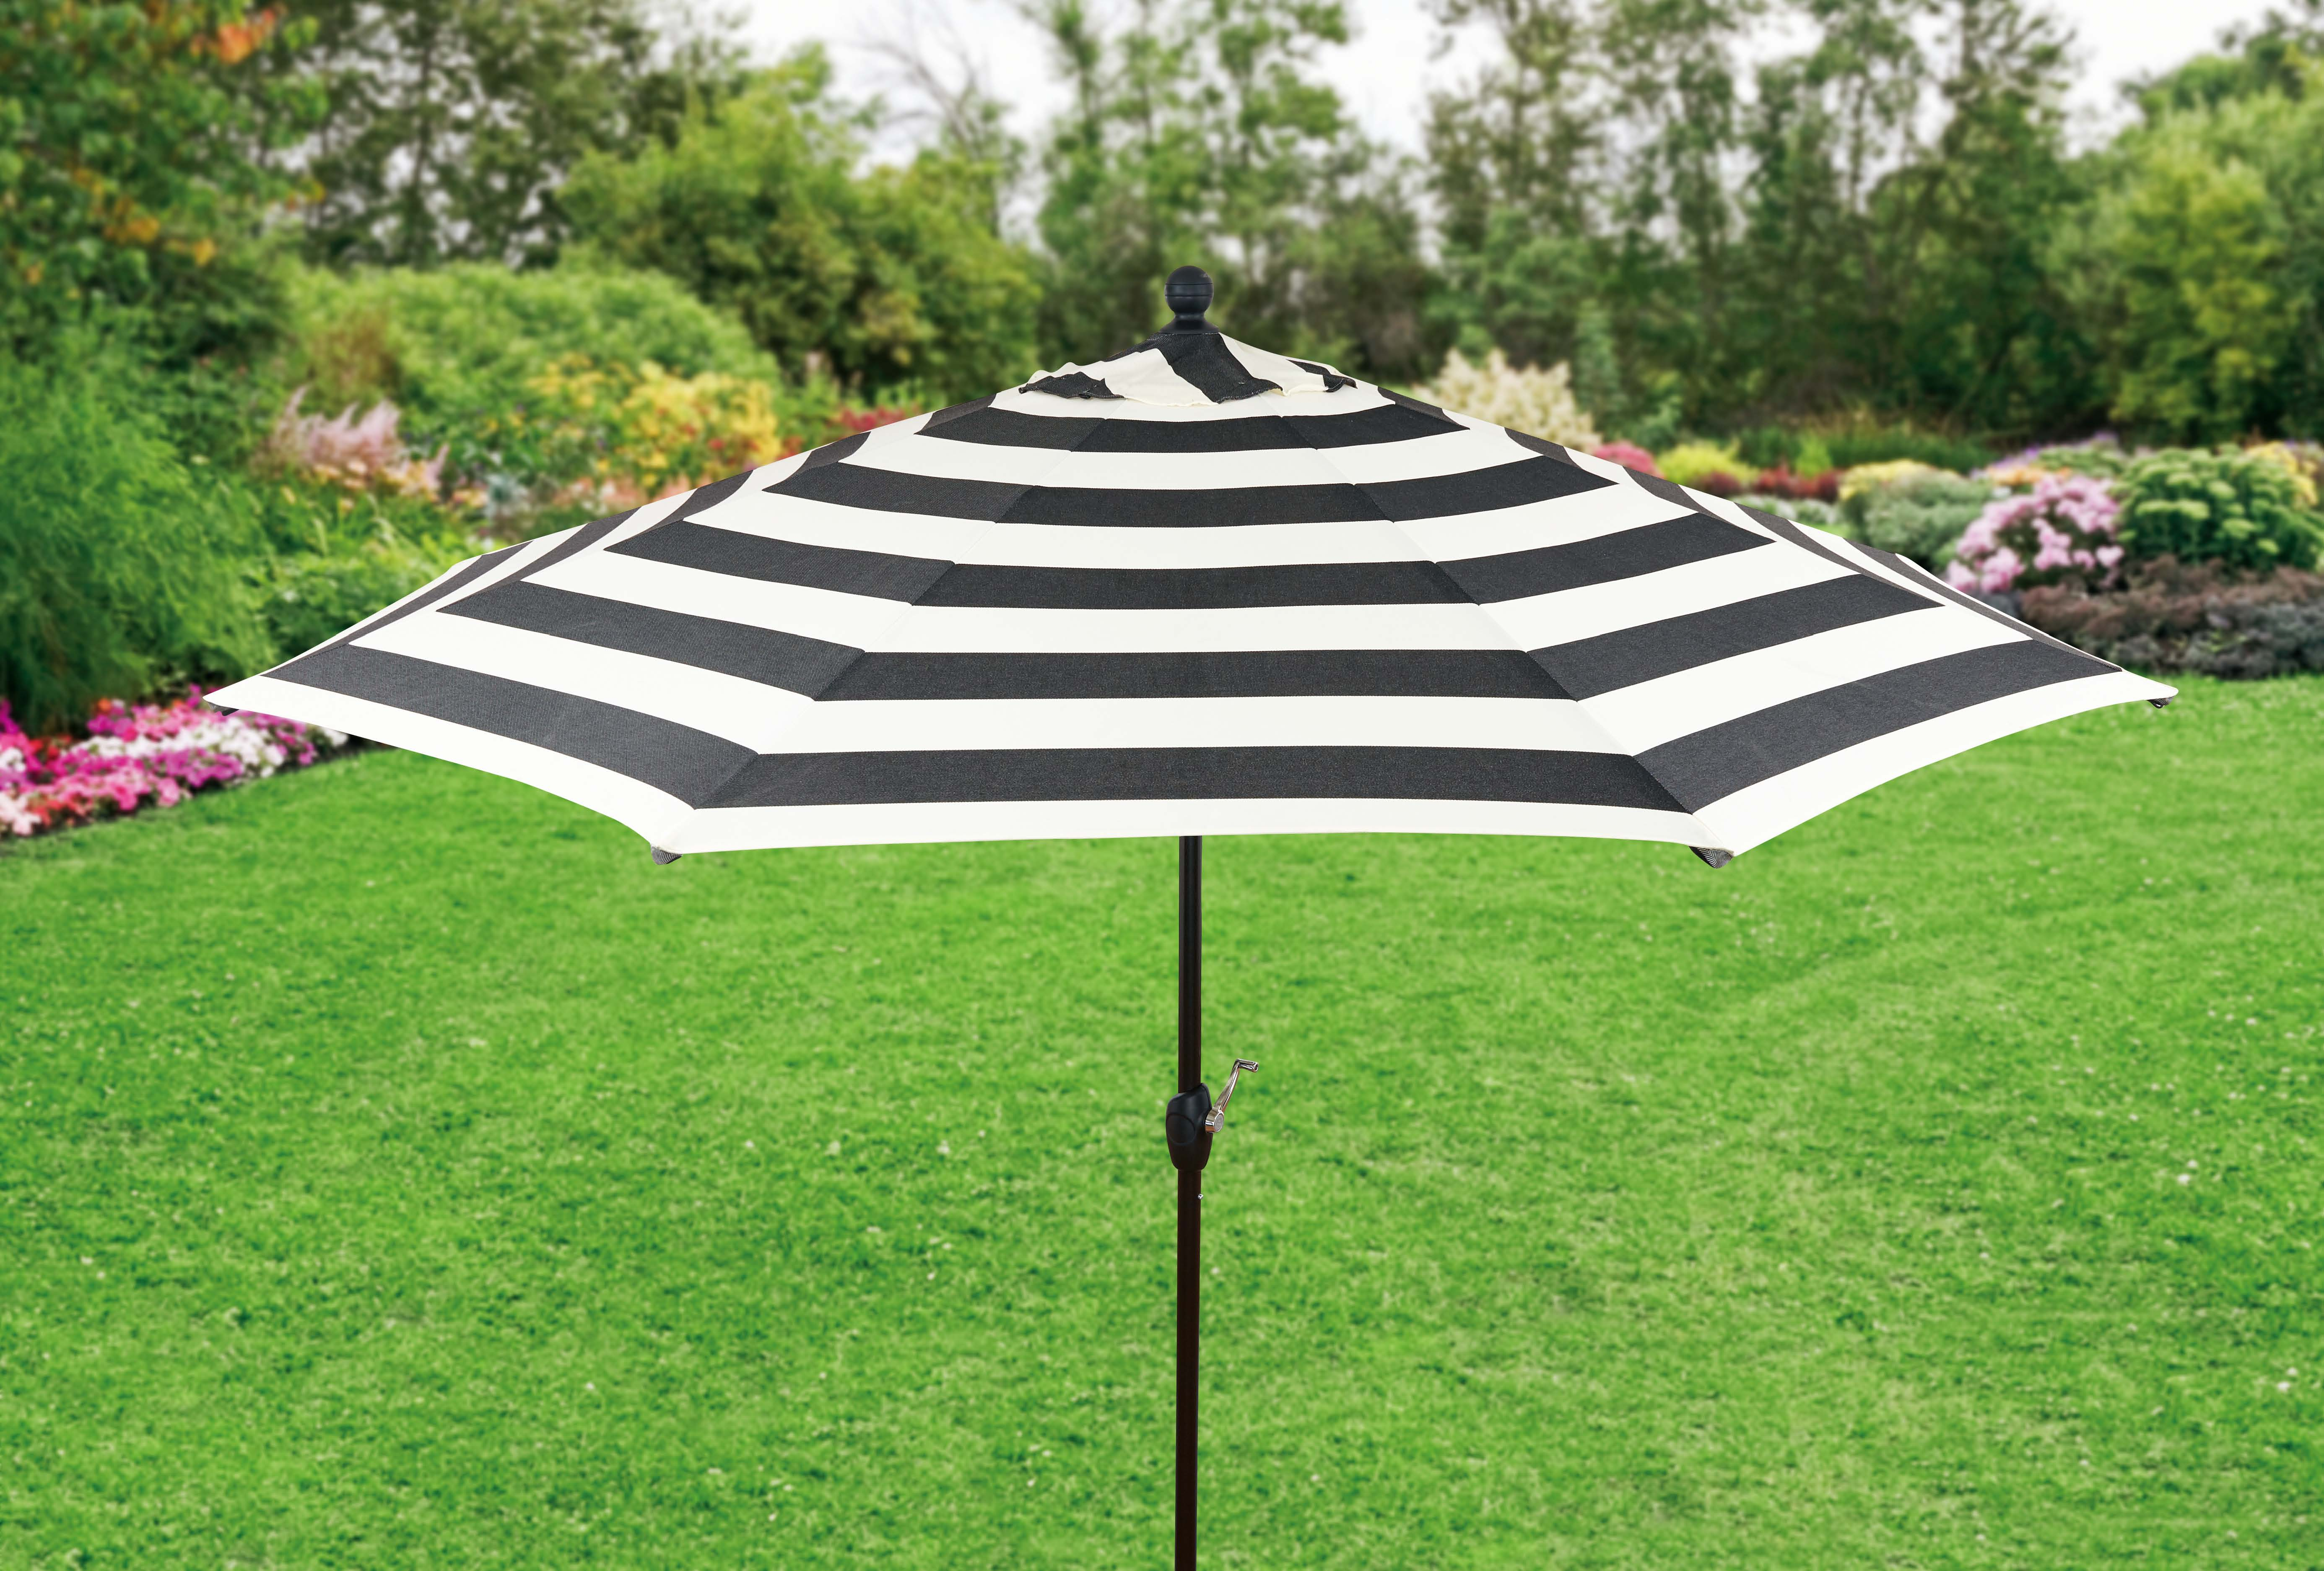 Better Homes and Gardens 9ft. Aluminum Market Umbrella, Cabana Stripe by NINGBO EVERLUCK OUTDOOR PRODUCTS MANUFACTING CO LTD